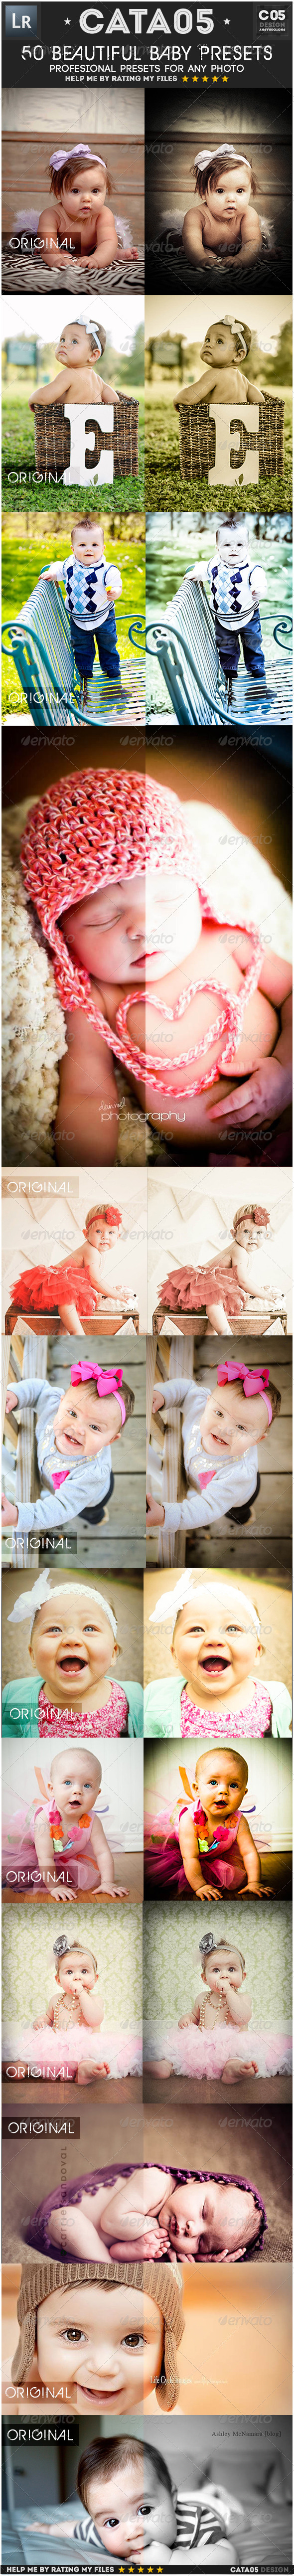 GraphicRiver 50 Beautiful Baby Presets 6603787